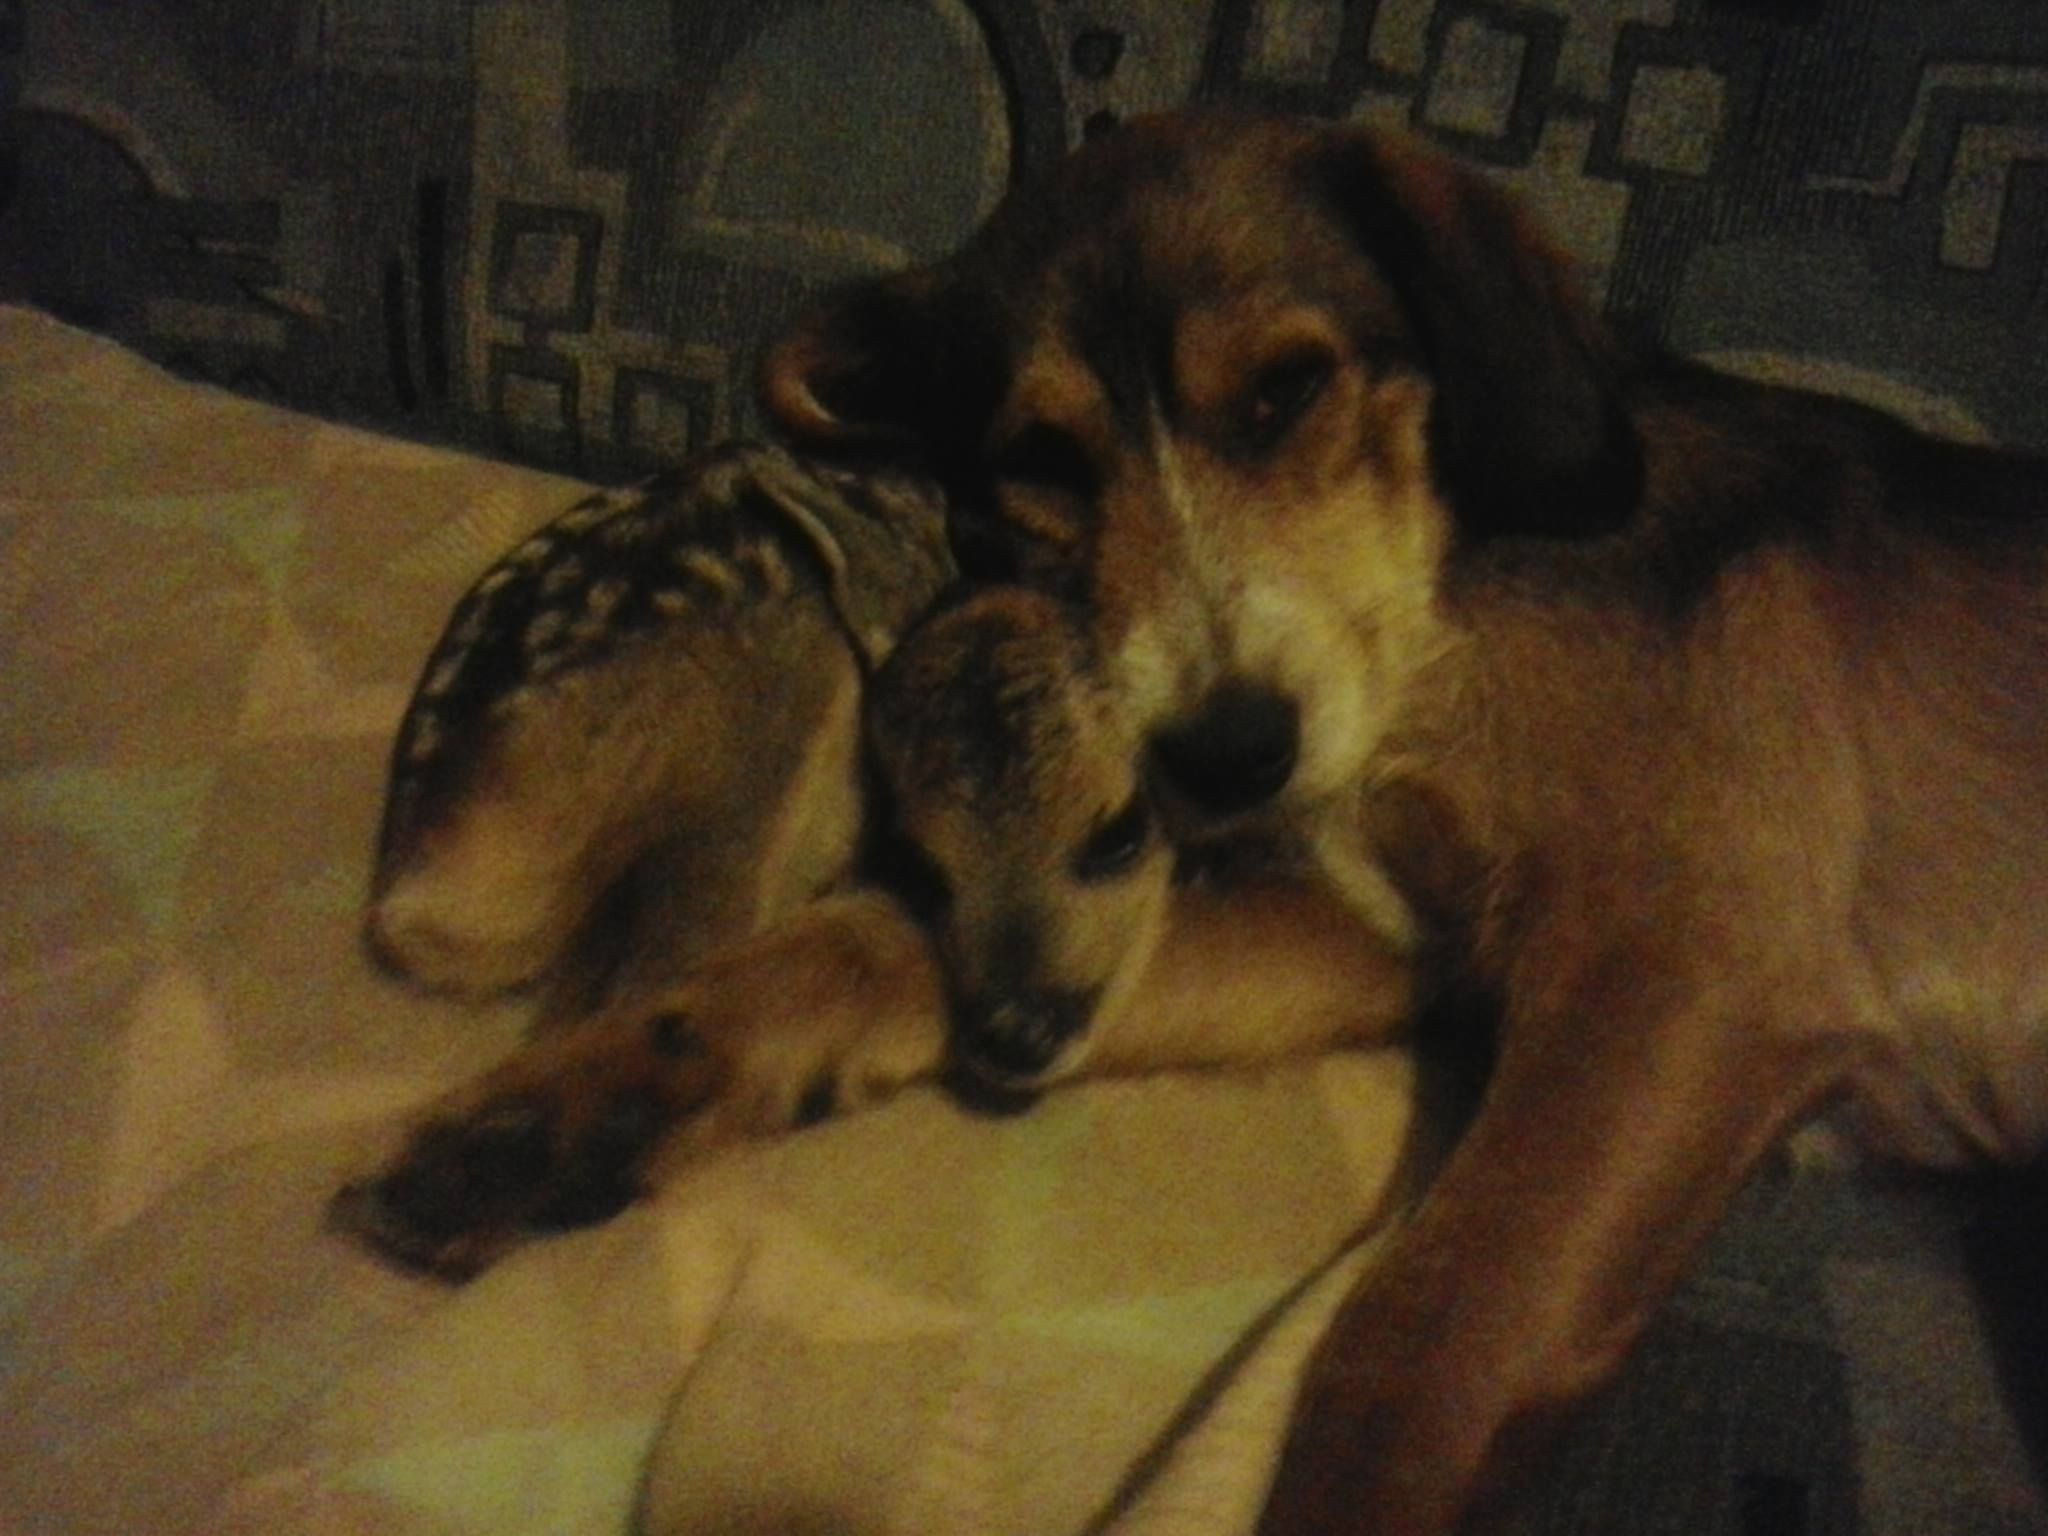 Ivana Petran Maslačak: I had simmilar eperience  we found her half dead, only 1.5 kilo in weight, but we raised her. This is my dog napping wit her, he accepted her from day one, and took care of her